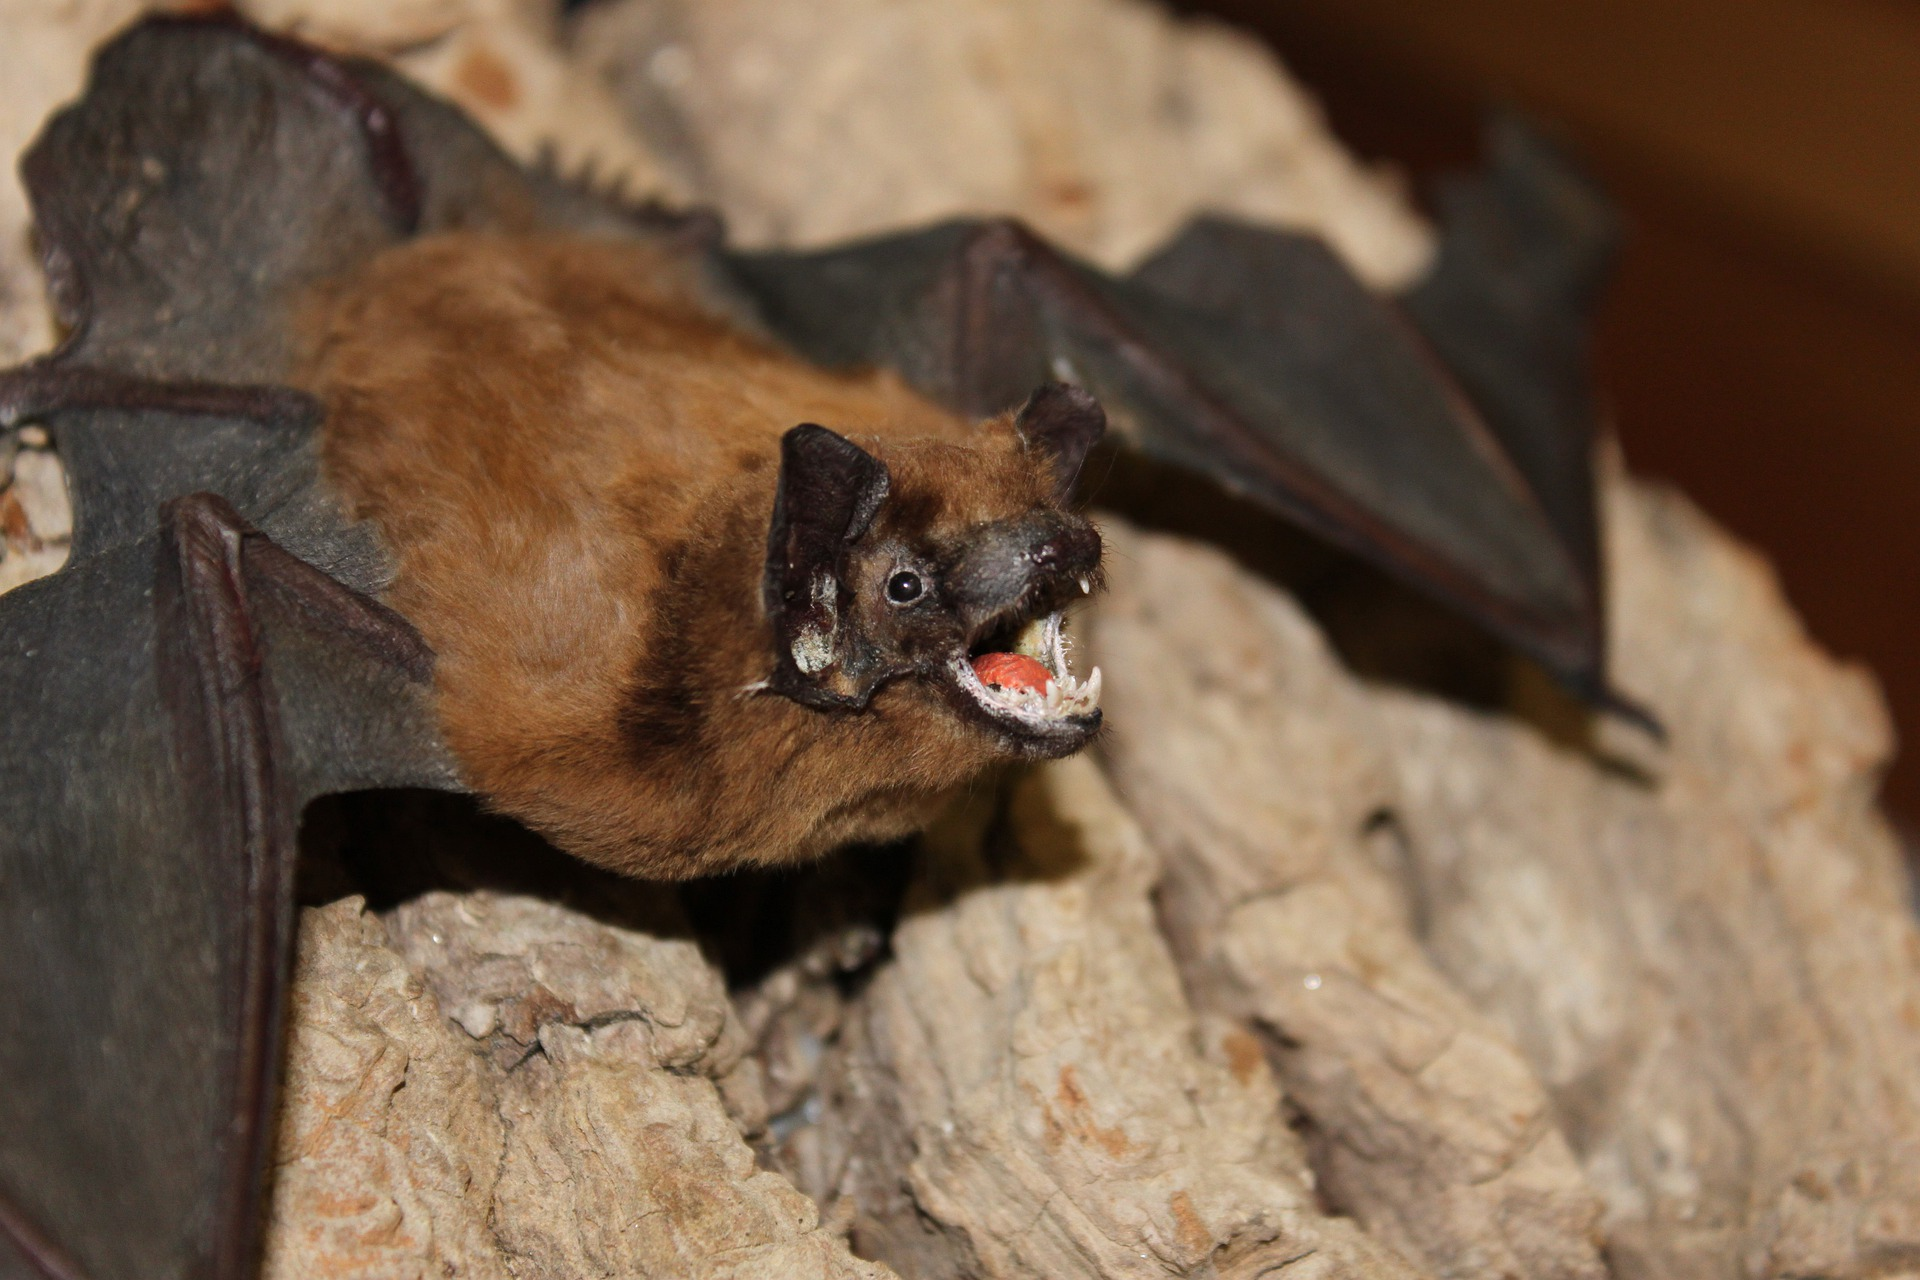 Image of Fringed Myotis roosting in a cave